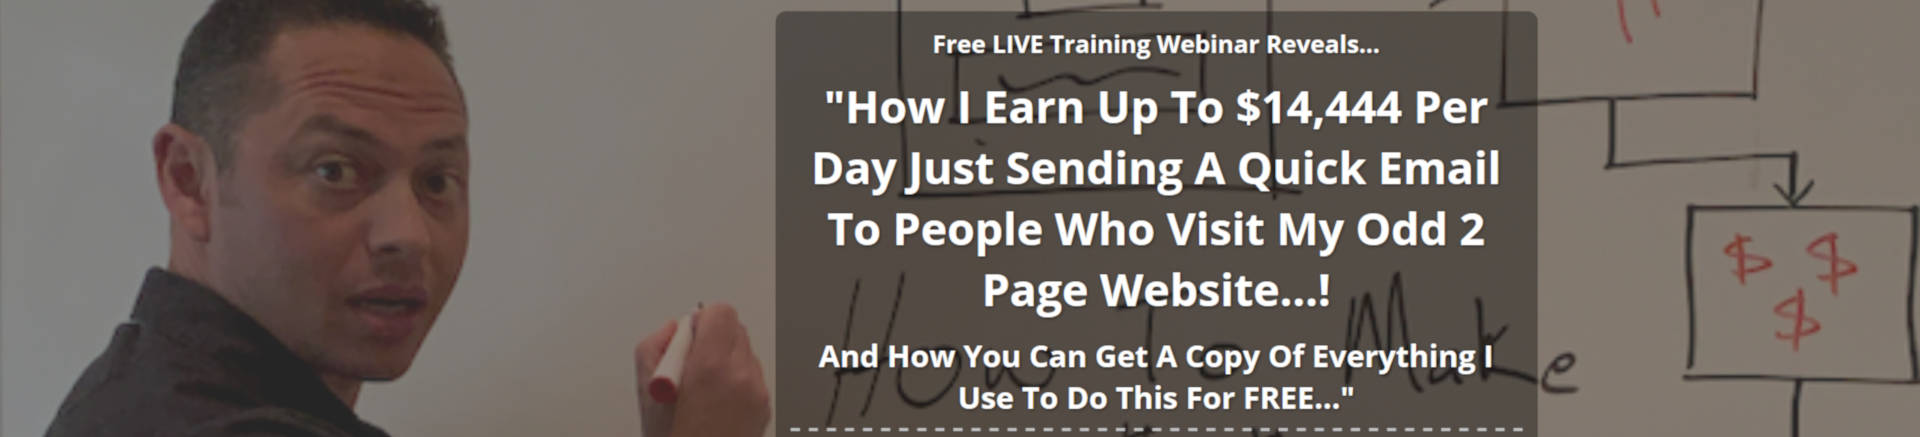 Training Program 1k A Day Fast Track Specials